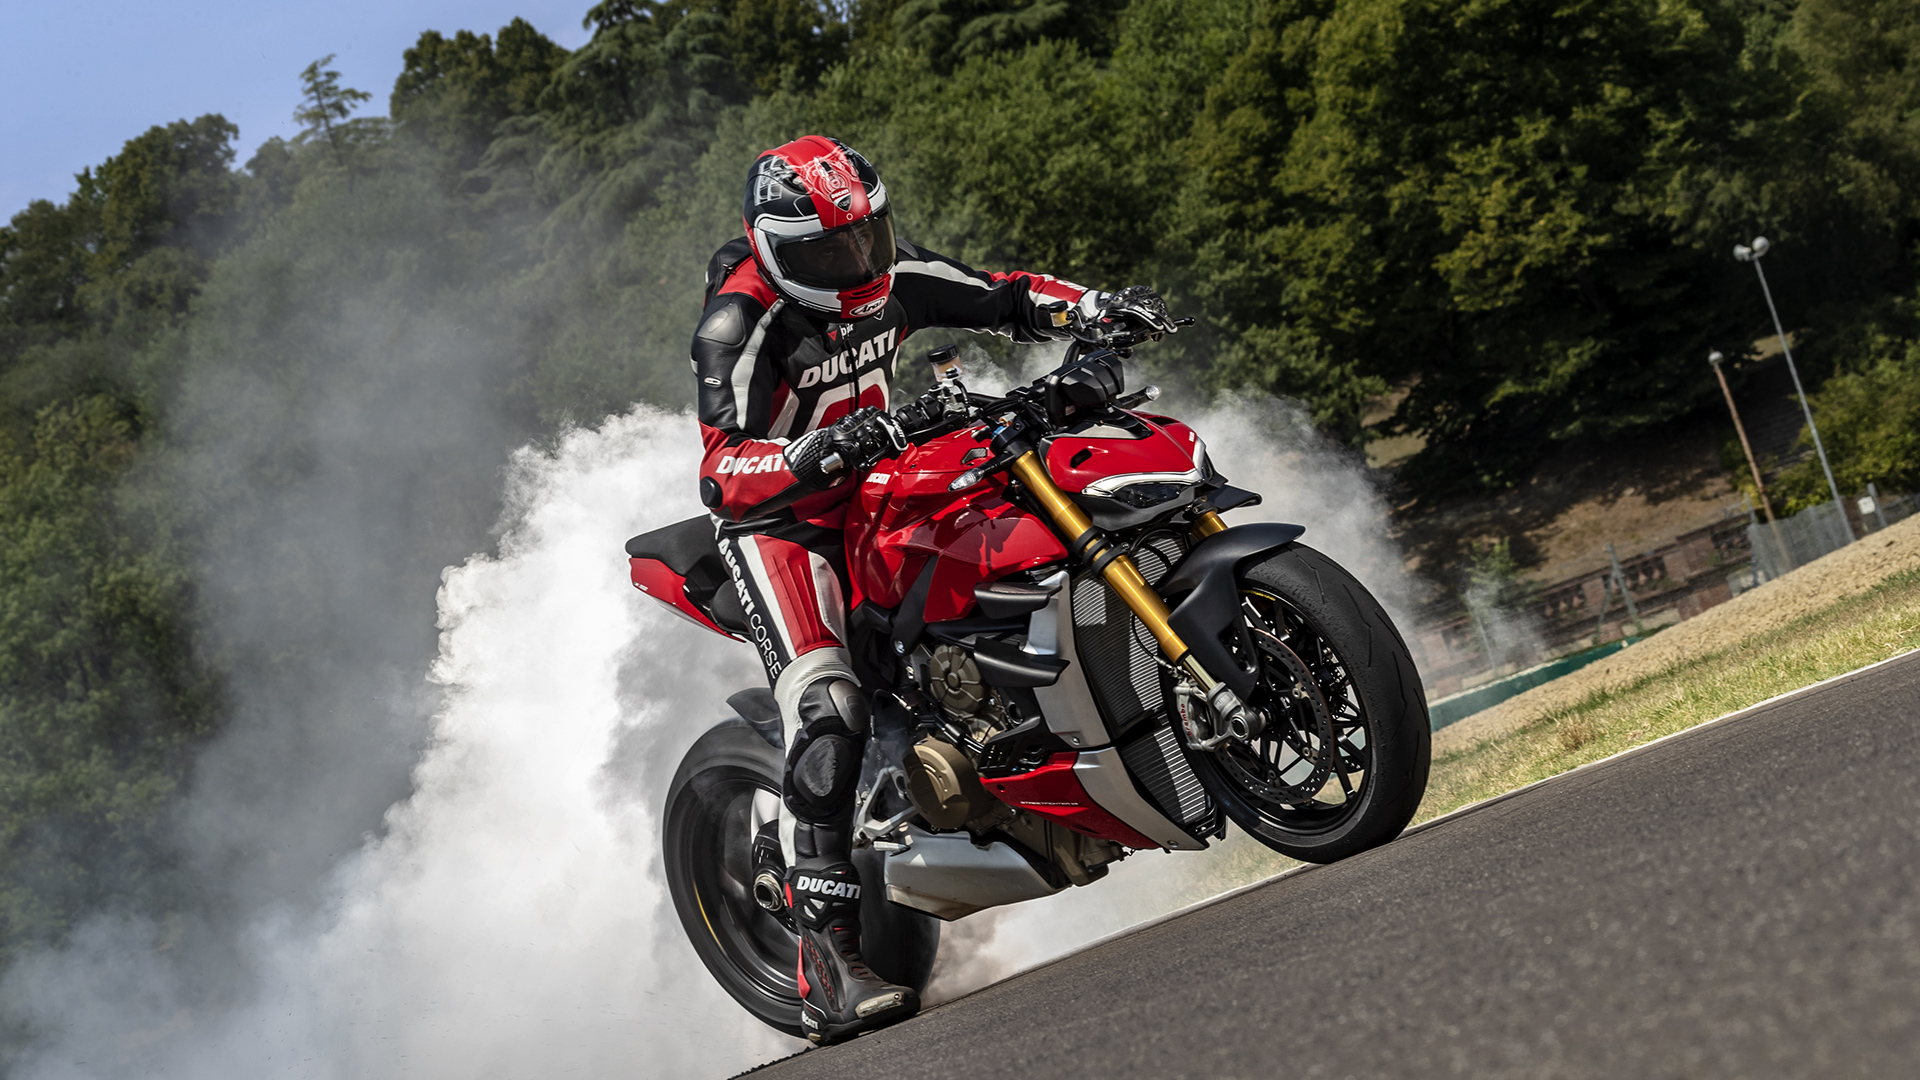 The Ducati Streetfighter V4 available as a motorbike rental